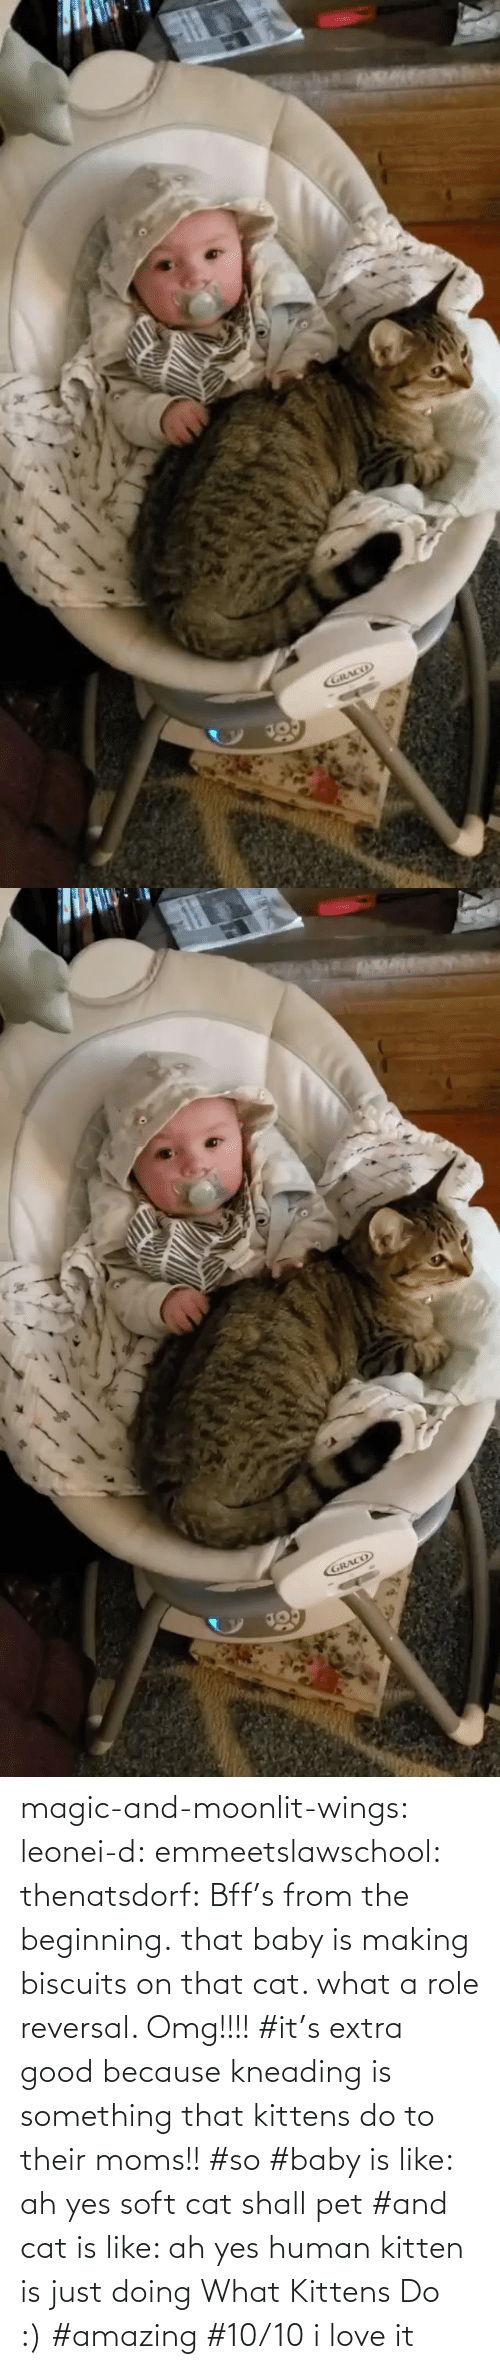 Tagged: magic-and-moonlit-wings: leonei-d:  emmeetslawschool:  thenatsdorf: Bff's from the beginning. that baby is making biscuits on that cat. what a role reversal.    Omg!!!!     #it's extra good because kneading is something that kittens do to their moms!! #so #baby is like: ah yes soft cat shall pet #and cat is like: ah yes human kitten is just doing What Kittens Do :) #amazing #10/10 i love it